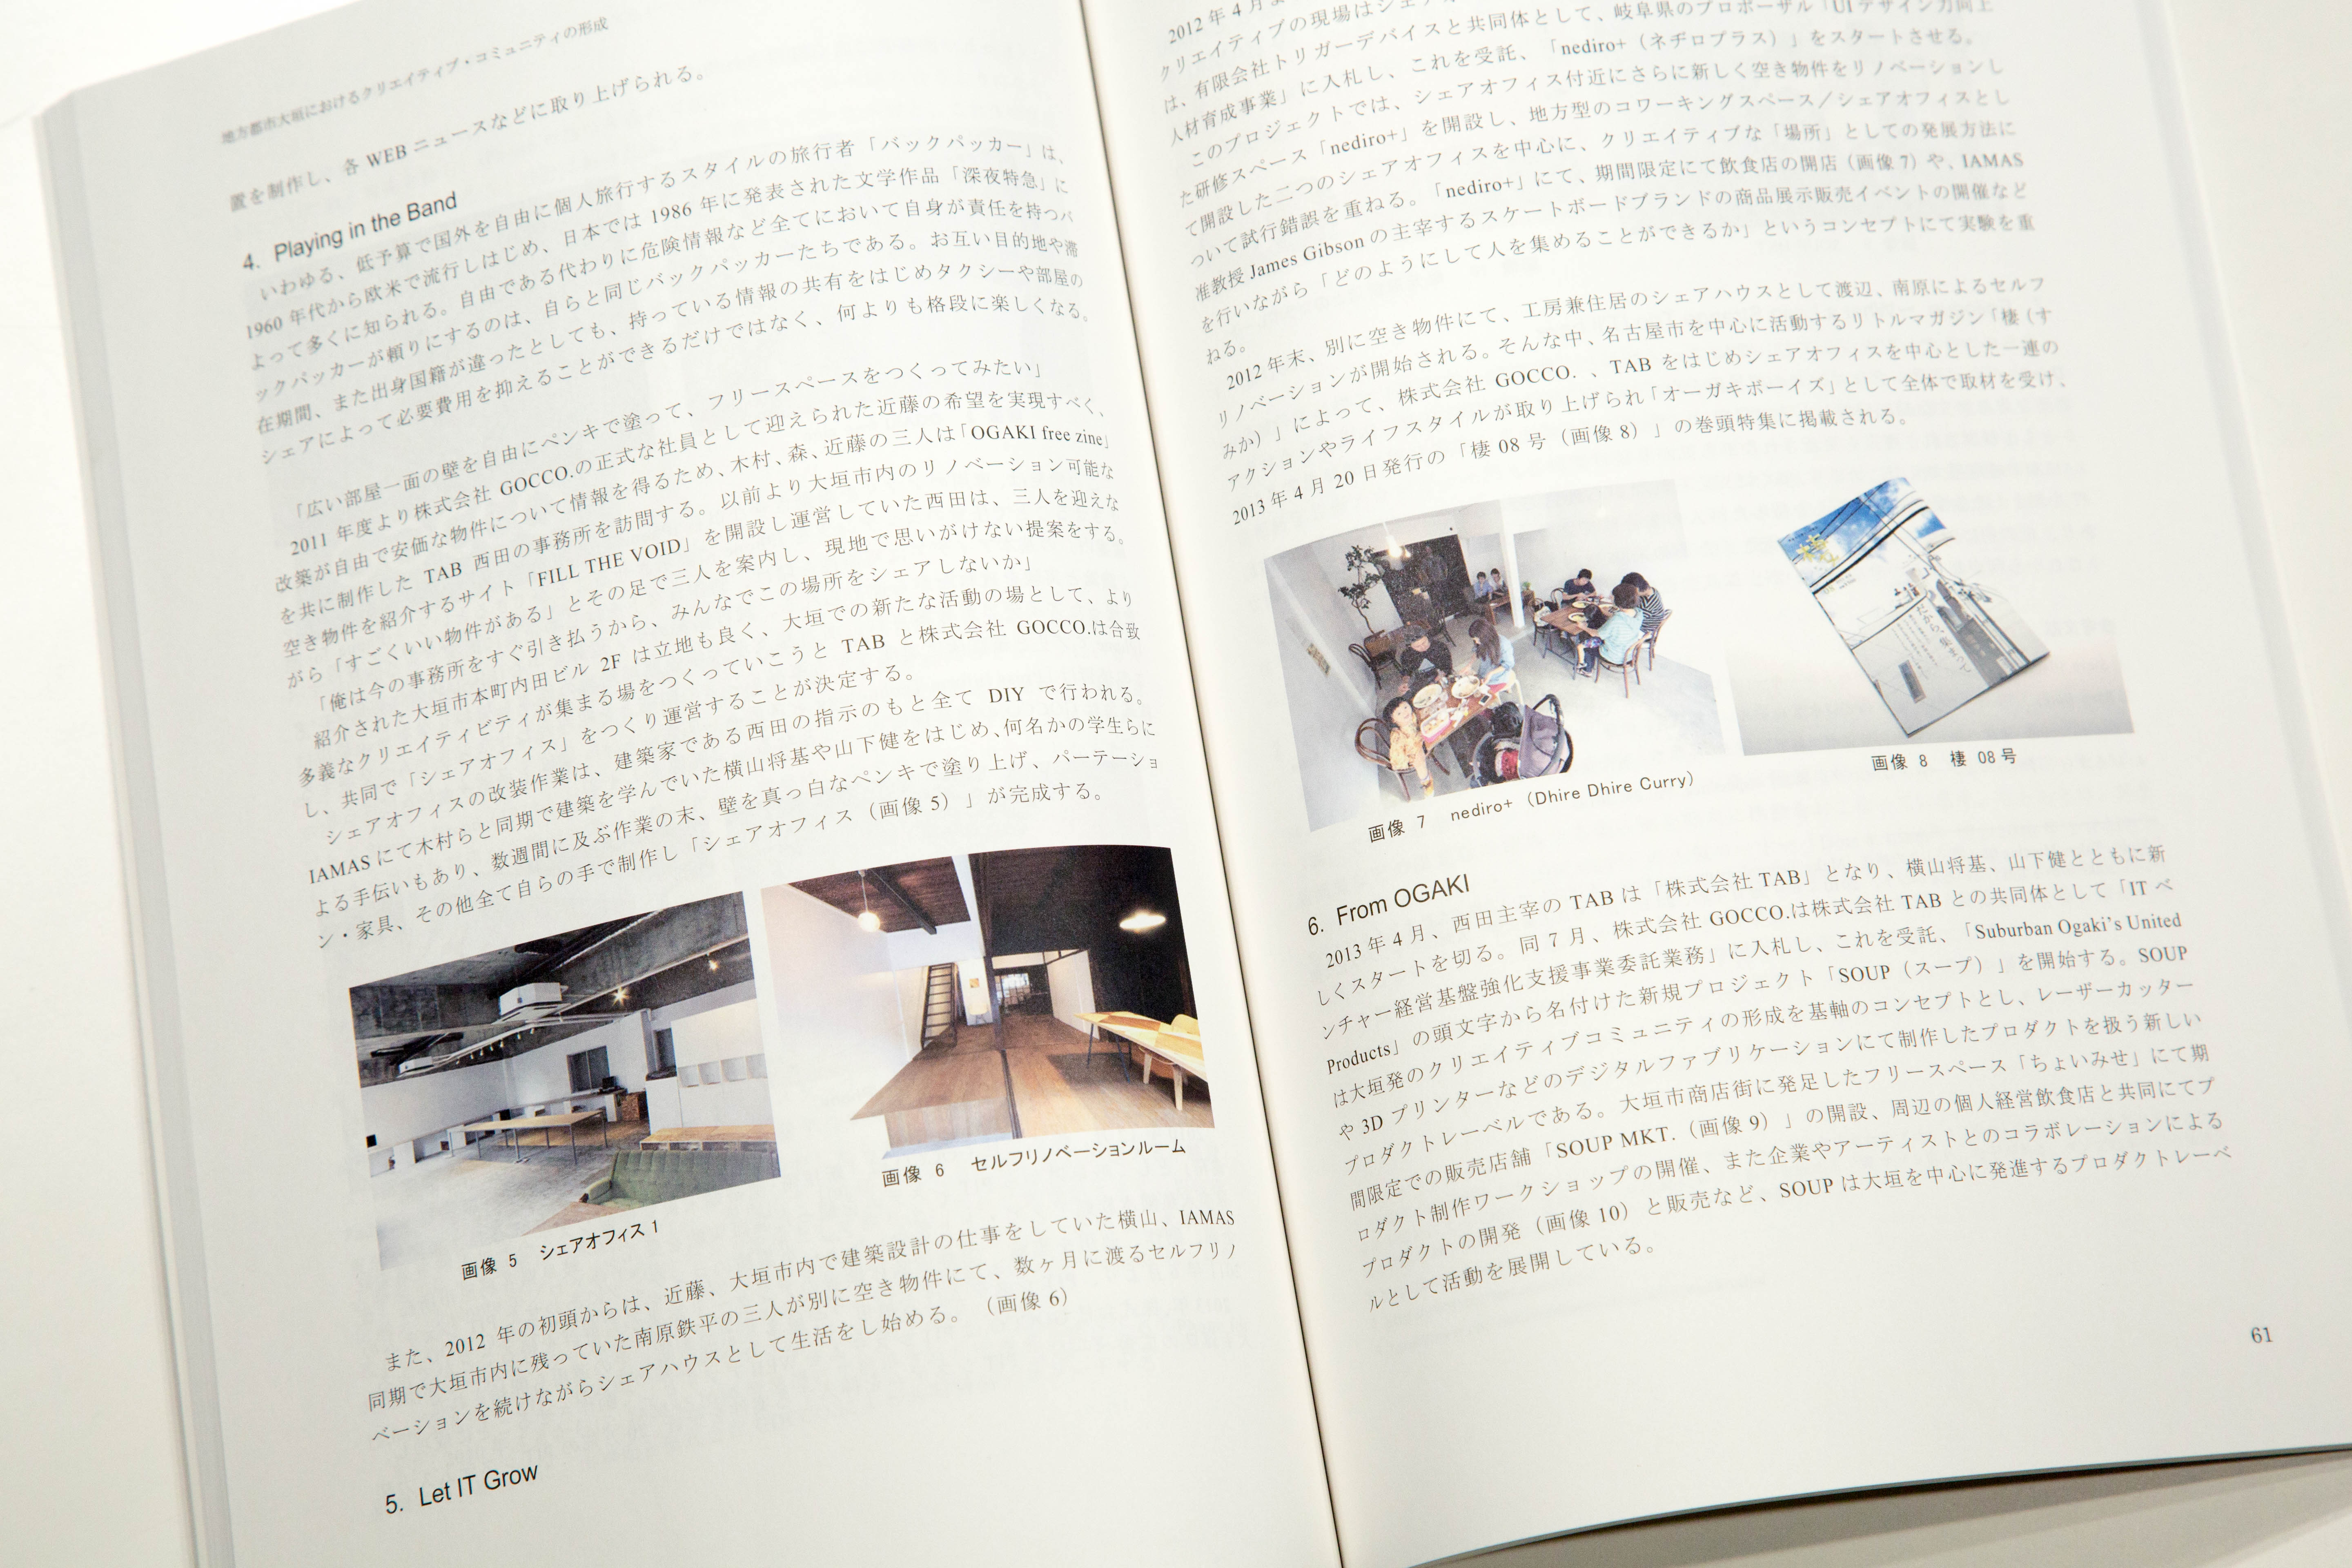 Journal of Institute of Advanced Media Arts and Sciences, Vol. 7イメージ